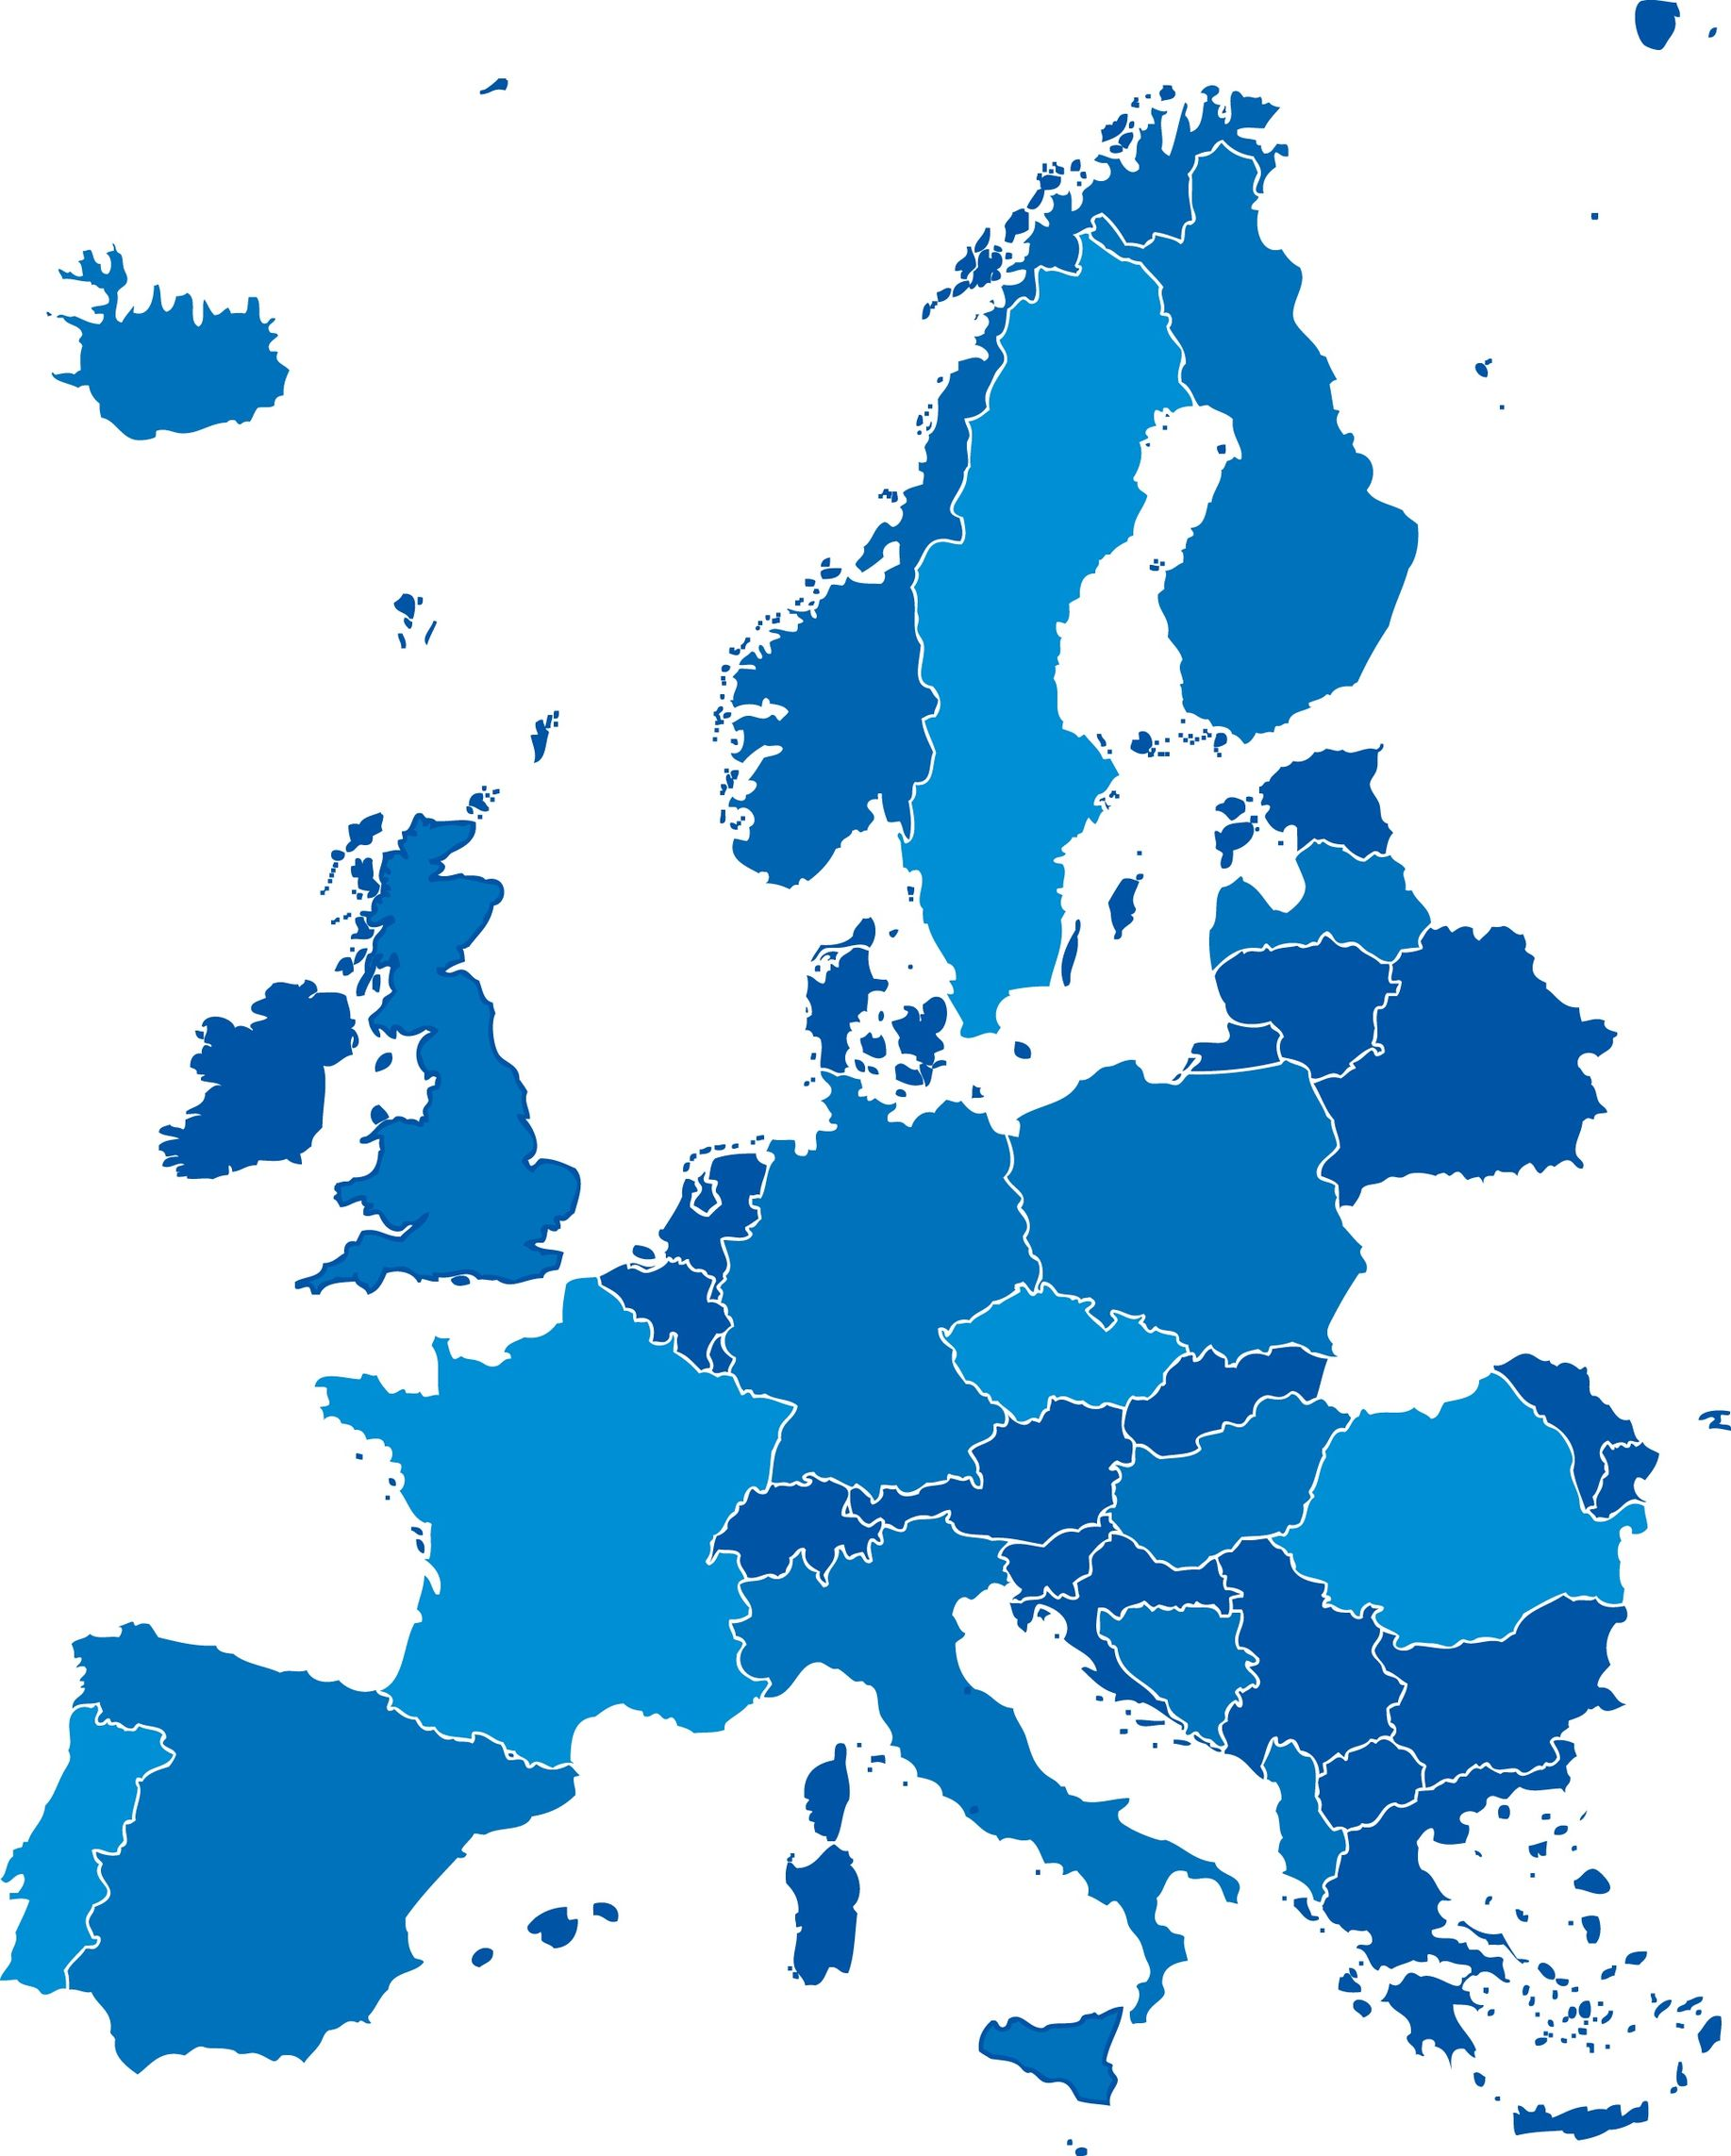 European distribution